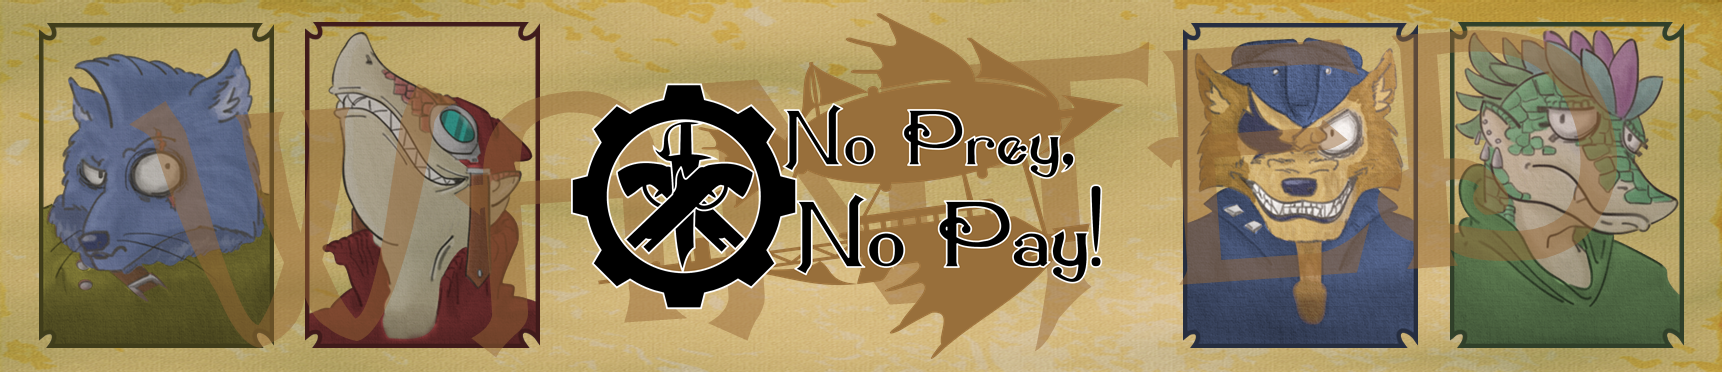 No Prey, No Pay